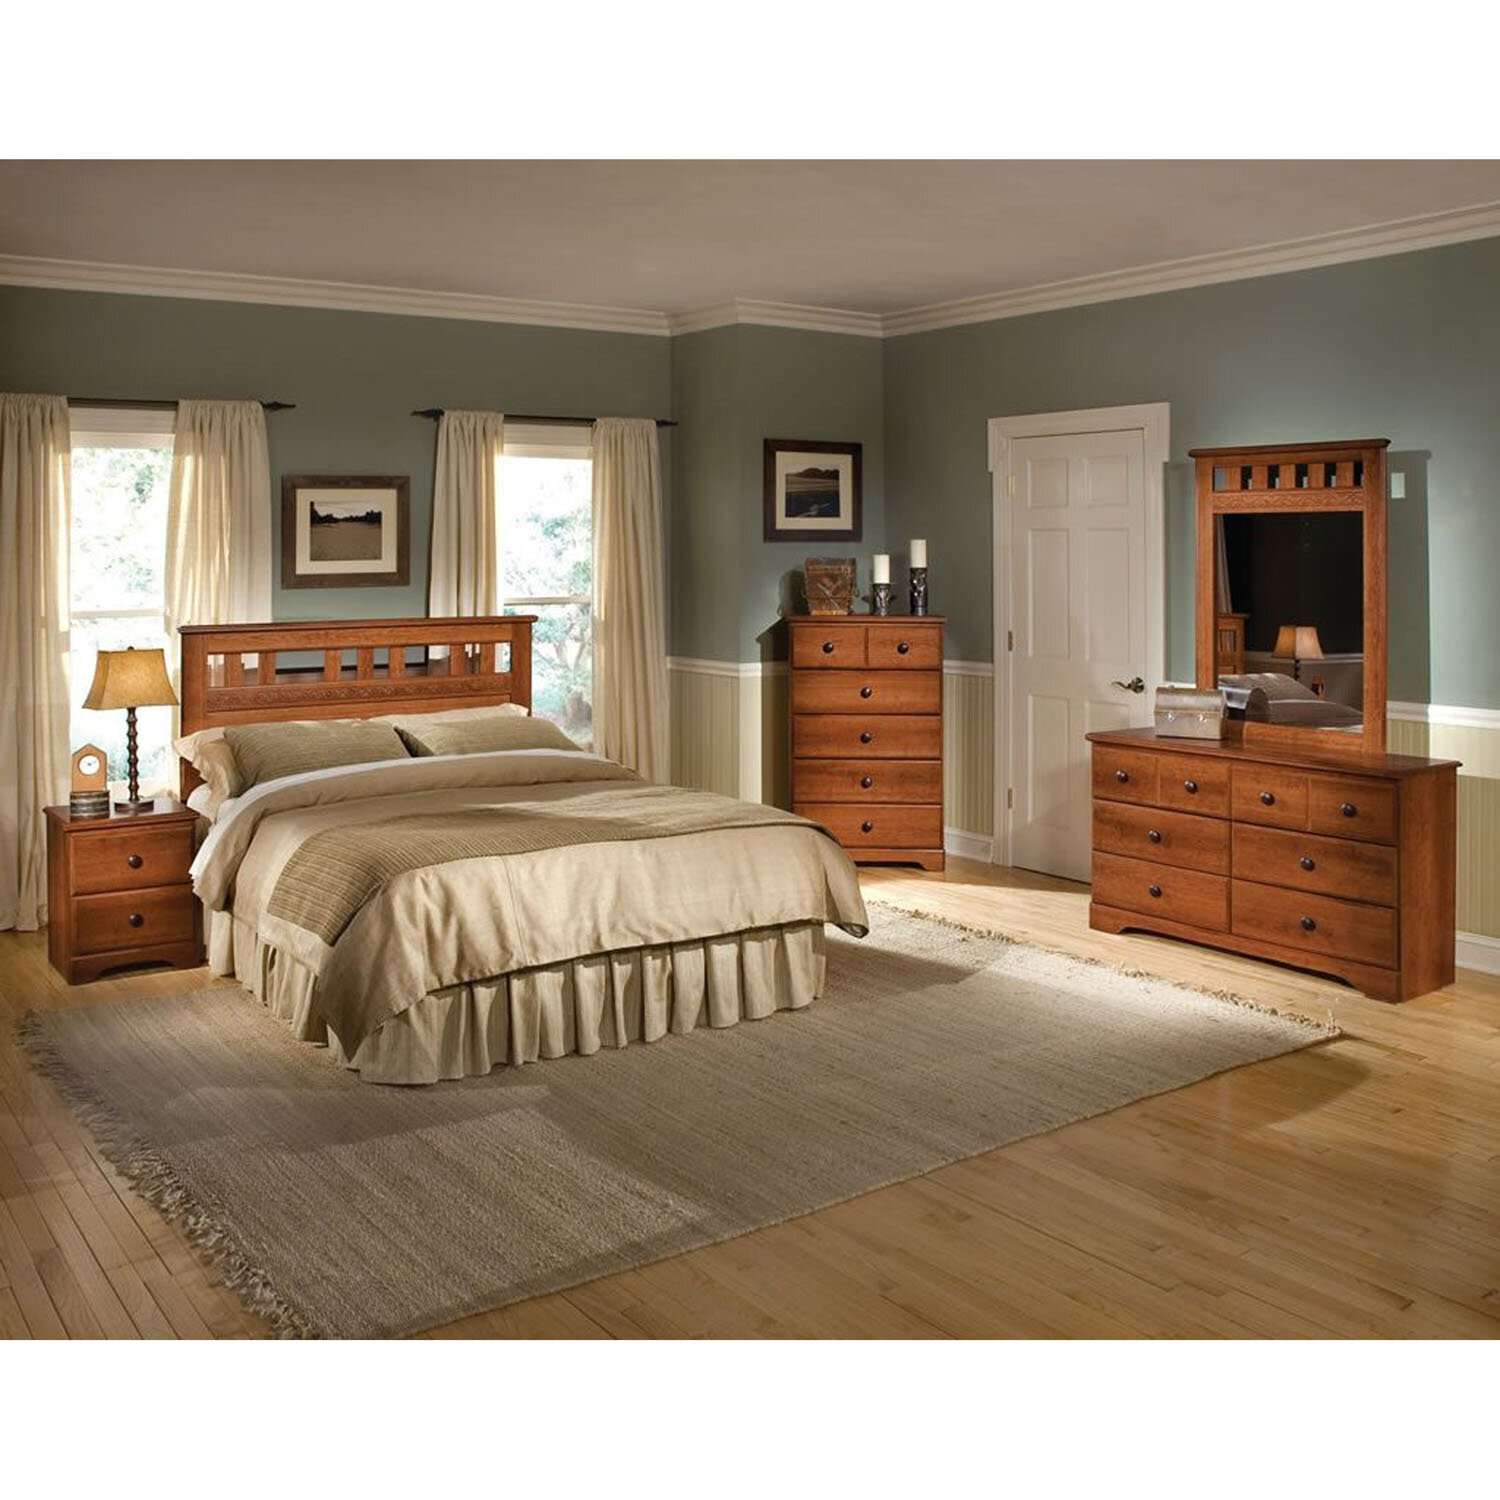 Merveilleux Alcott Hill Suffield Queen Panel 5 Piece Bedroom Set U0026 Reviews | Wayfair